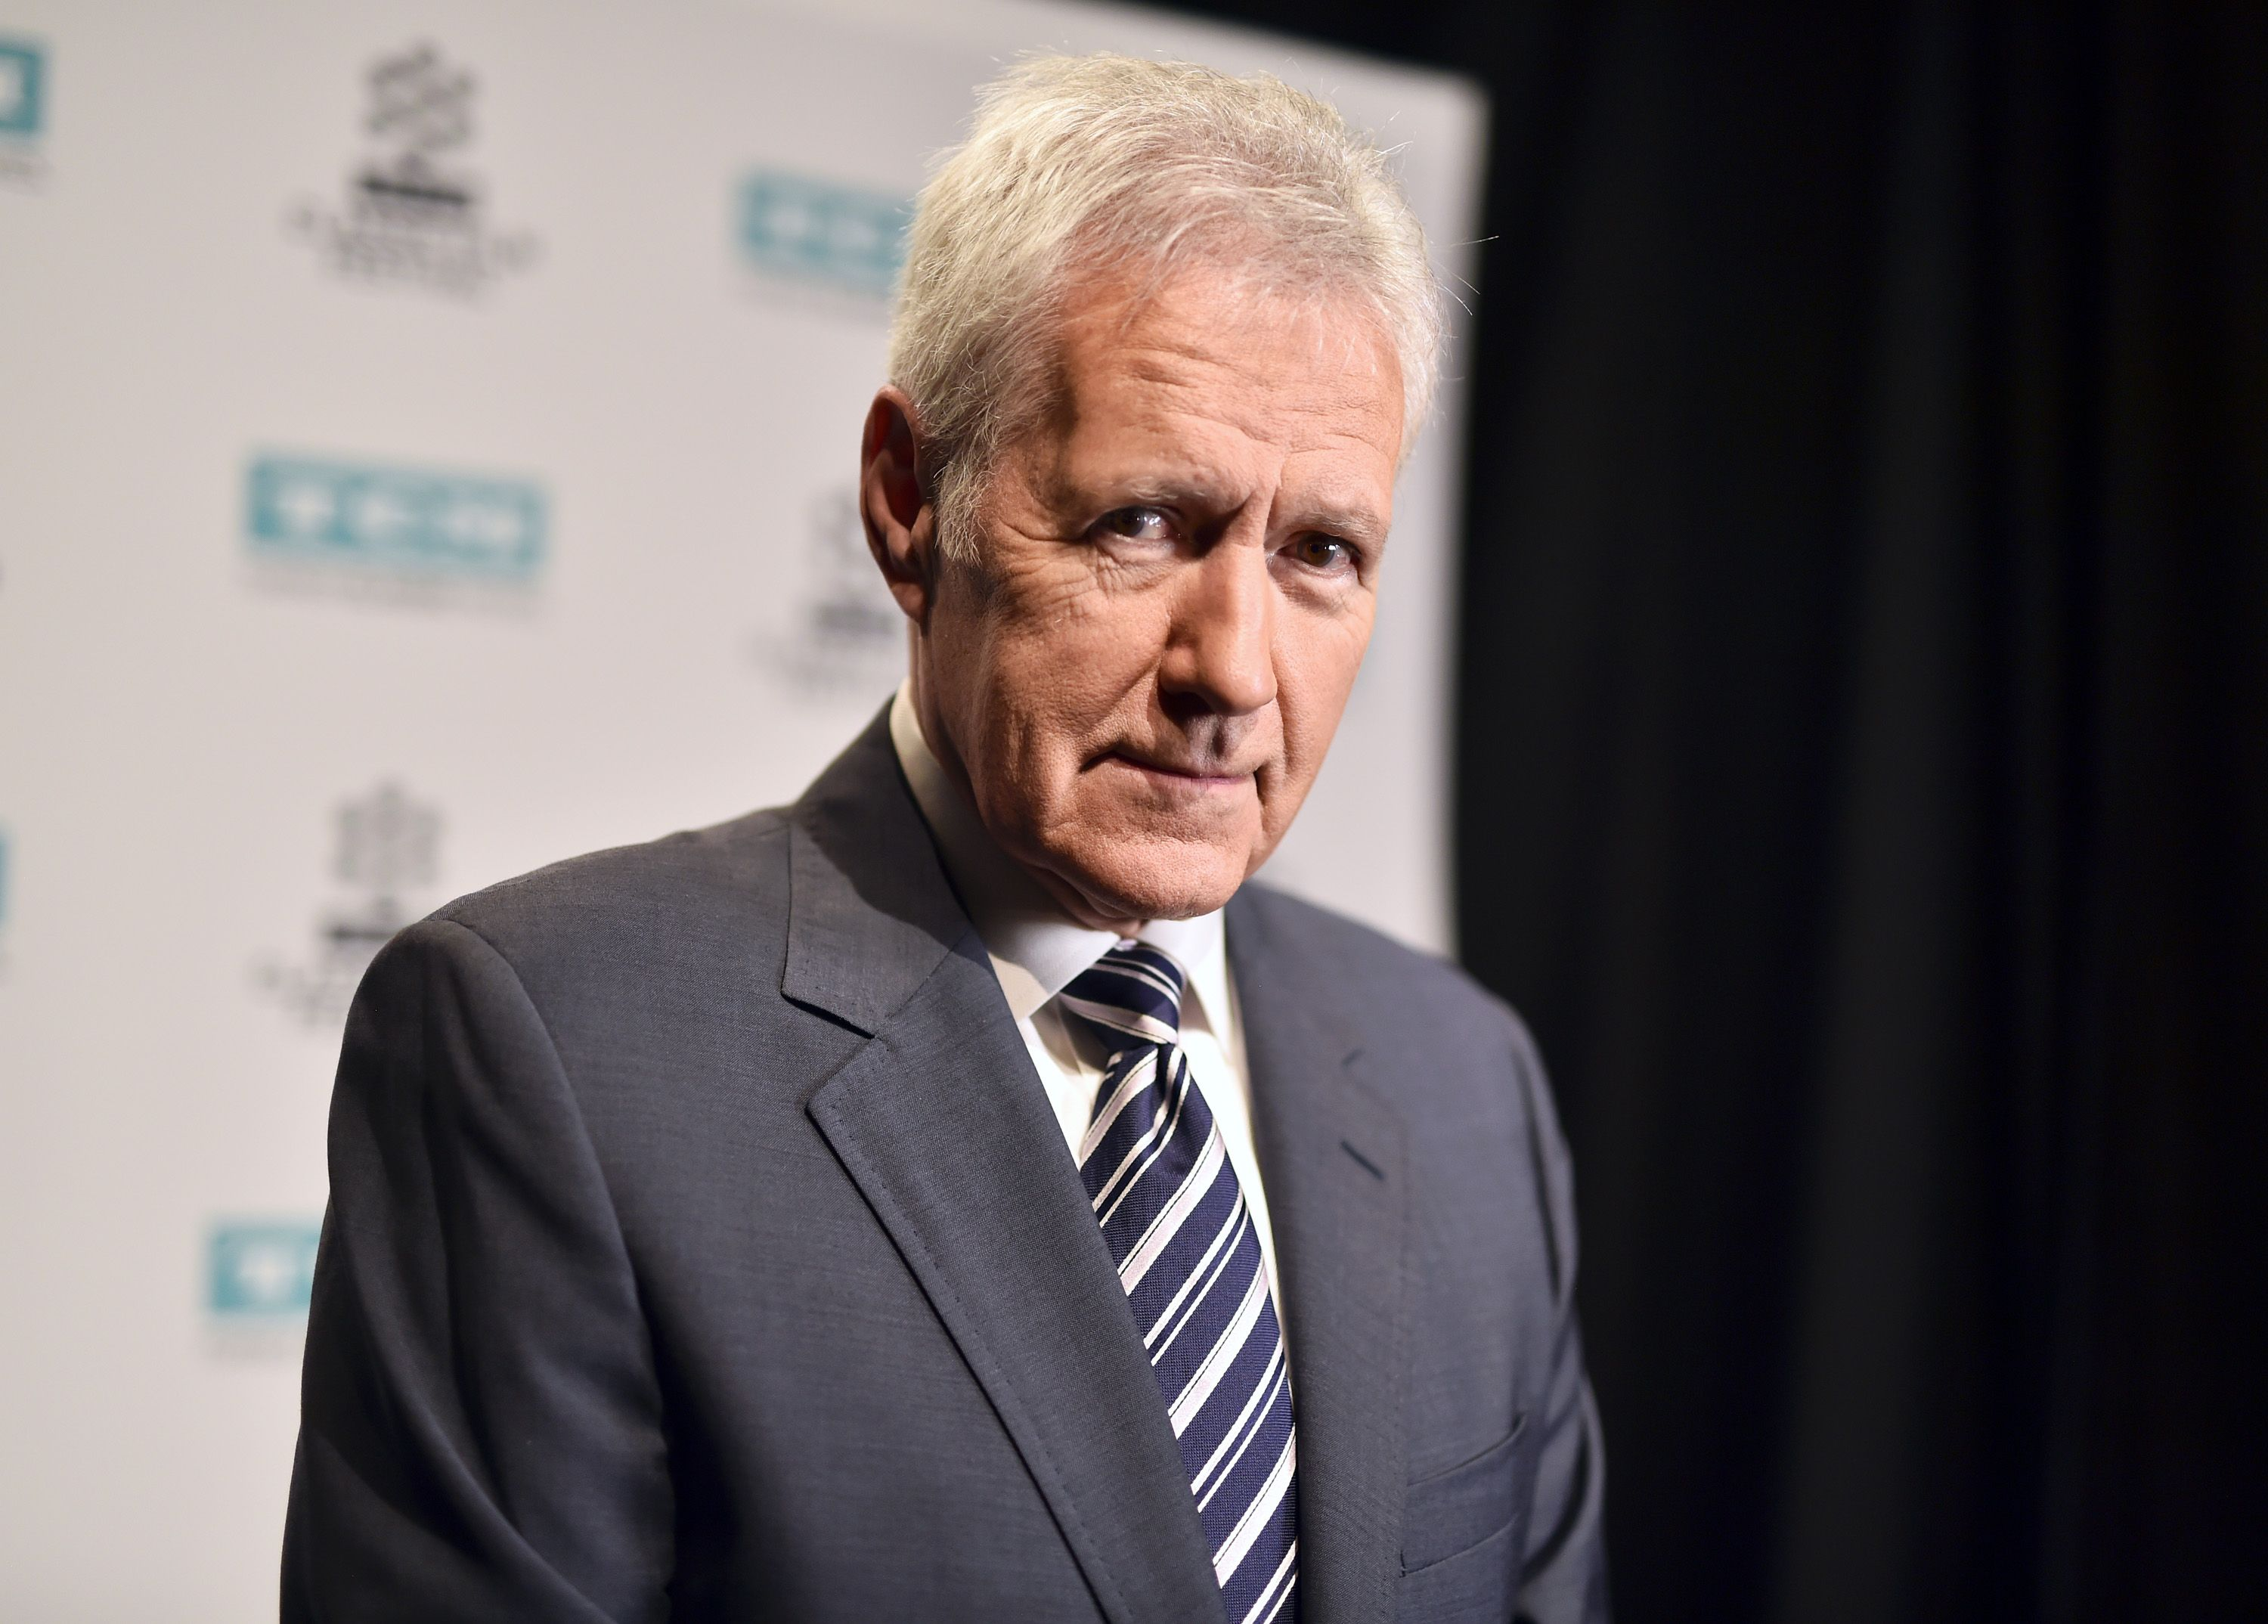 TV personality Alex Trebek at the screening of 'The Bridge on The River Kwai' during the 2017 TCM Classic Film Festival on April 7, 2017 | Photo: Getty Images